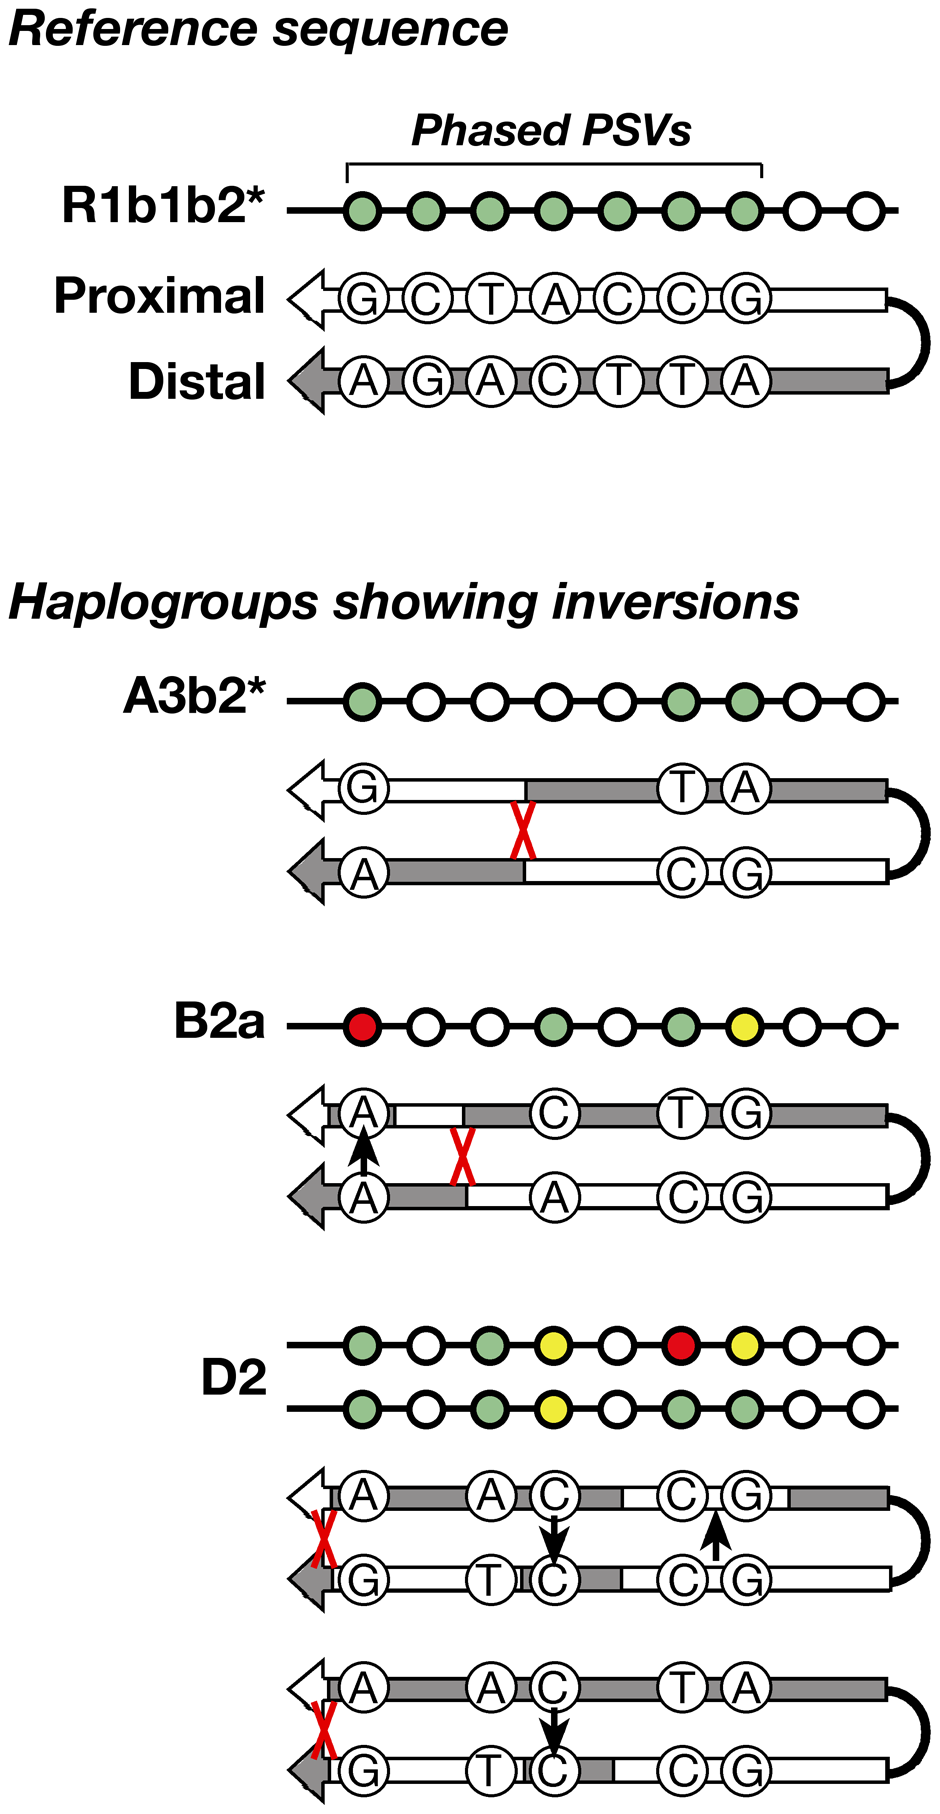 Schematic representation of the inversions identified within three haplogroups.